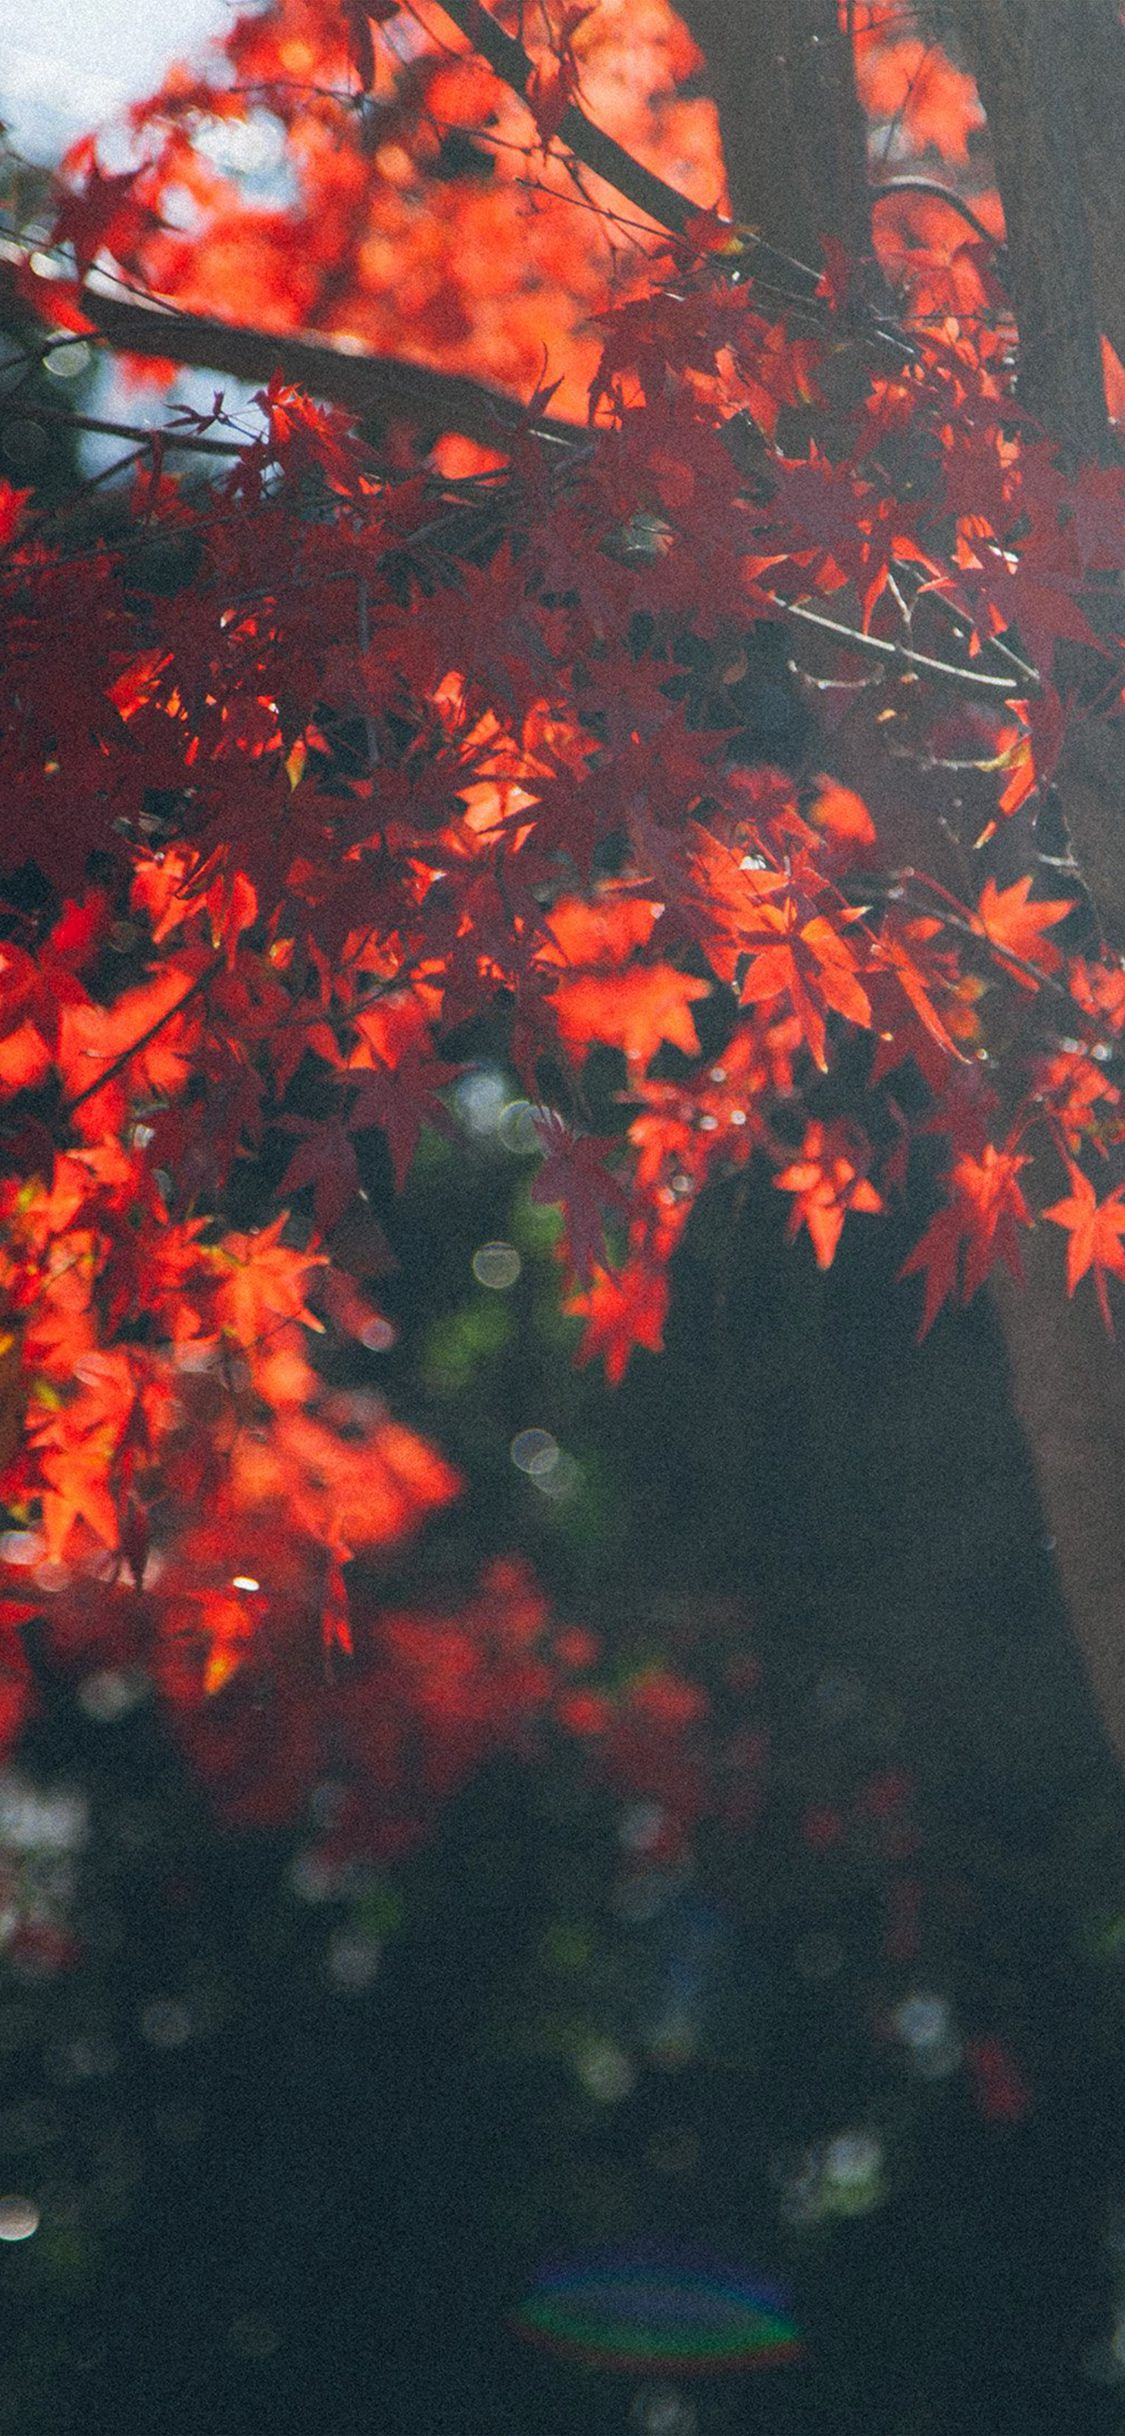 Fall Tree Autumn Nature iPhone X wallpaper in 2019